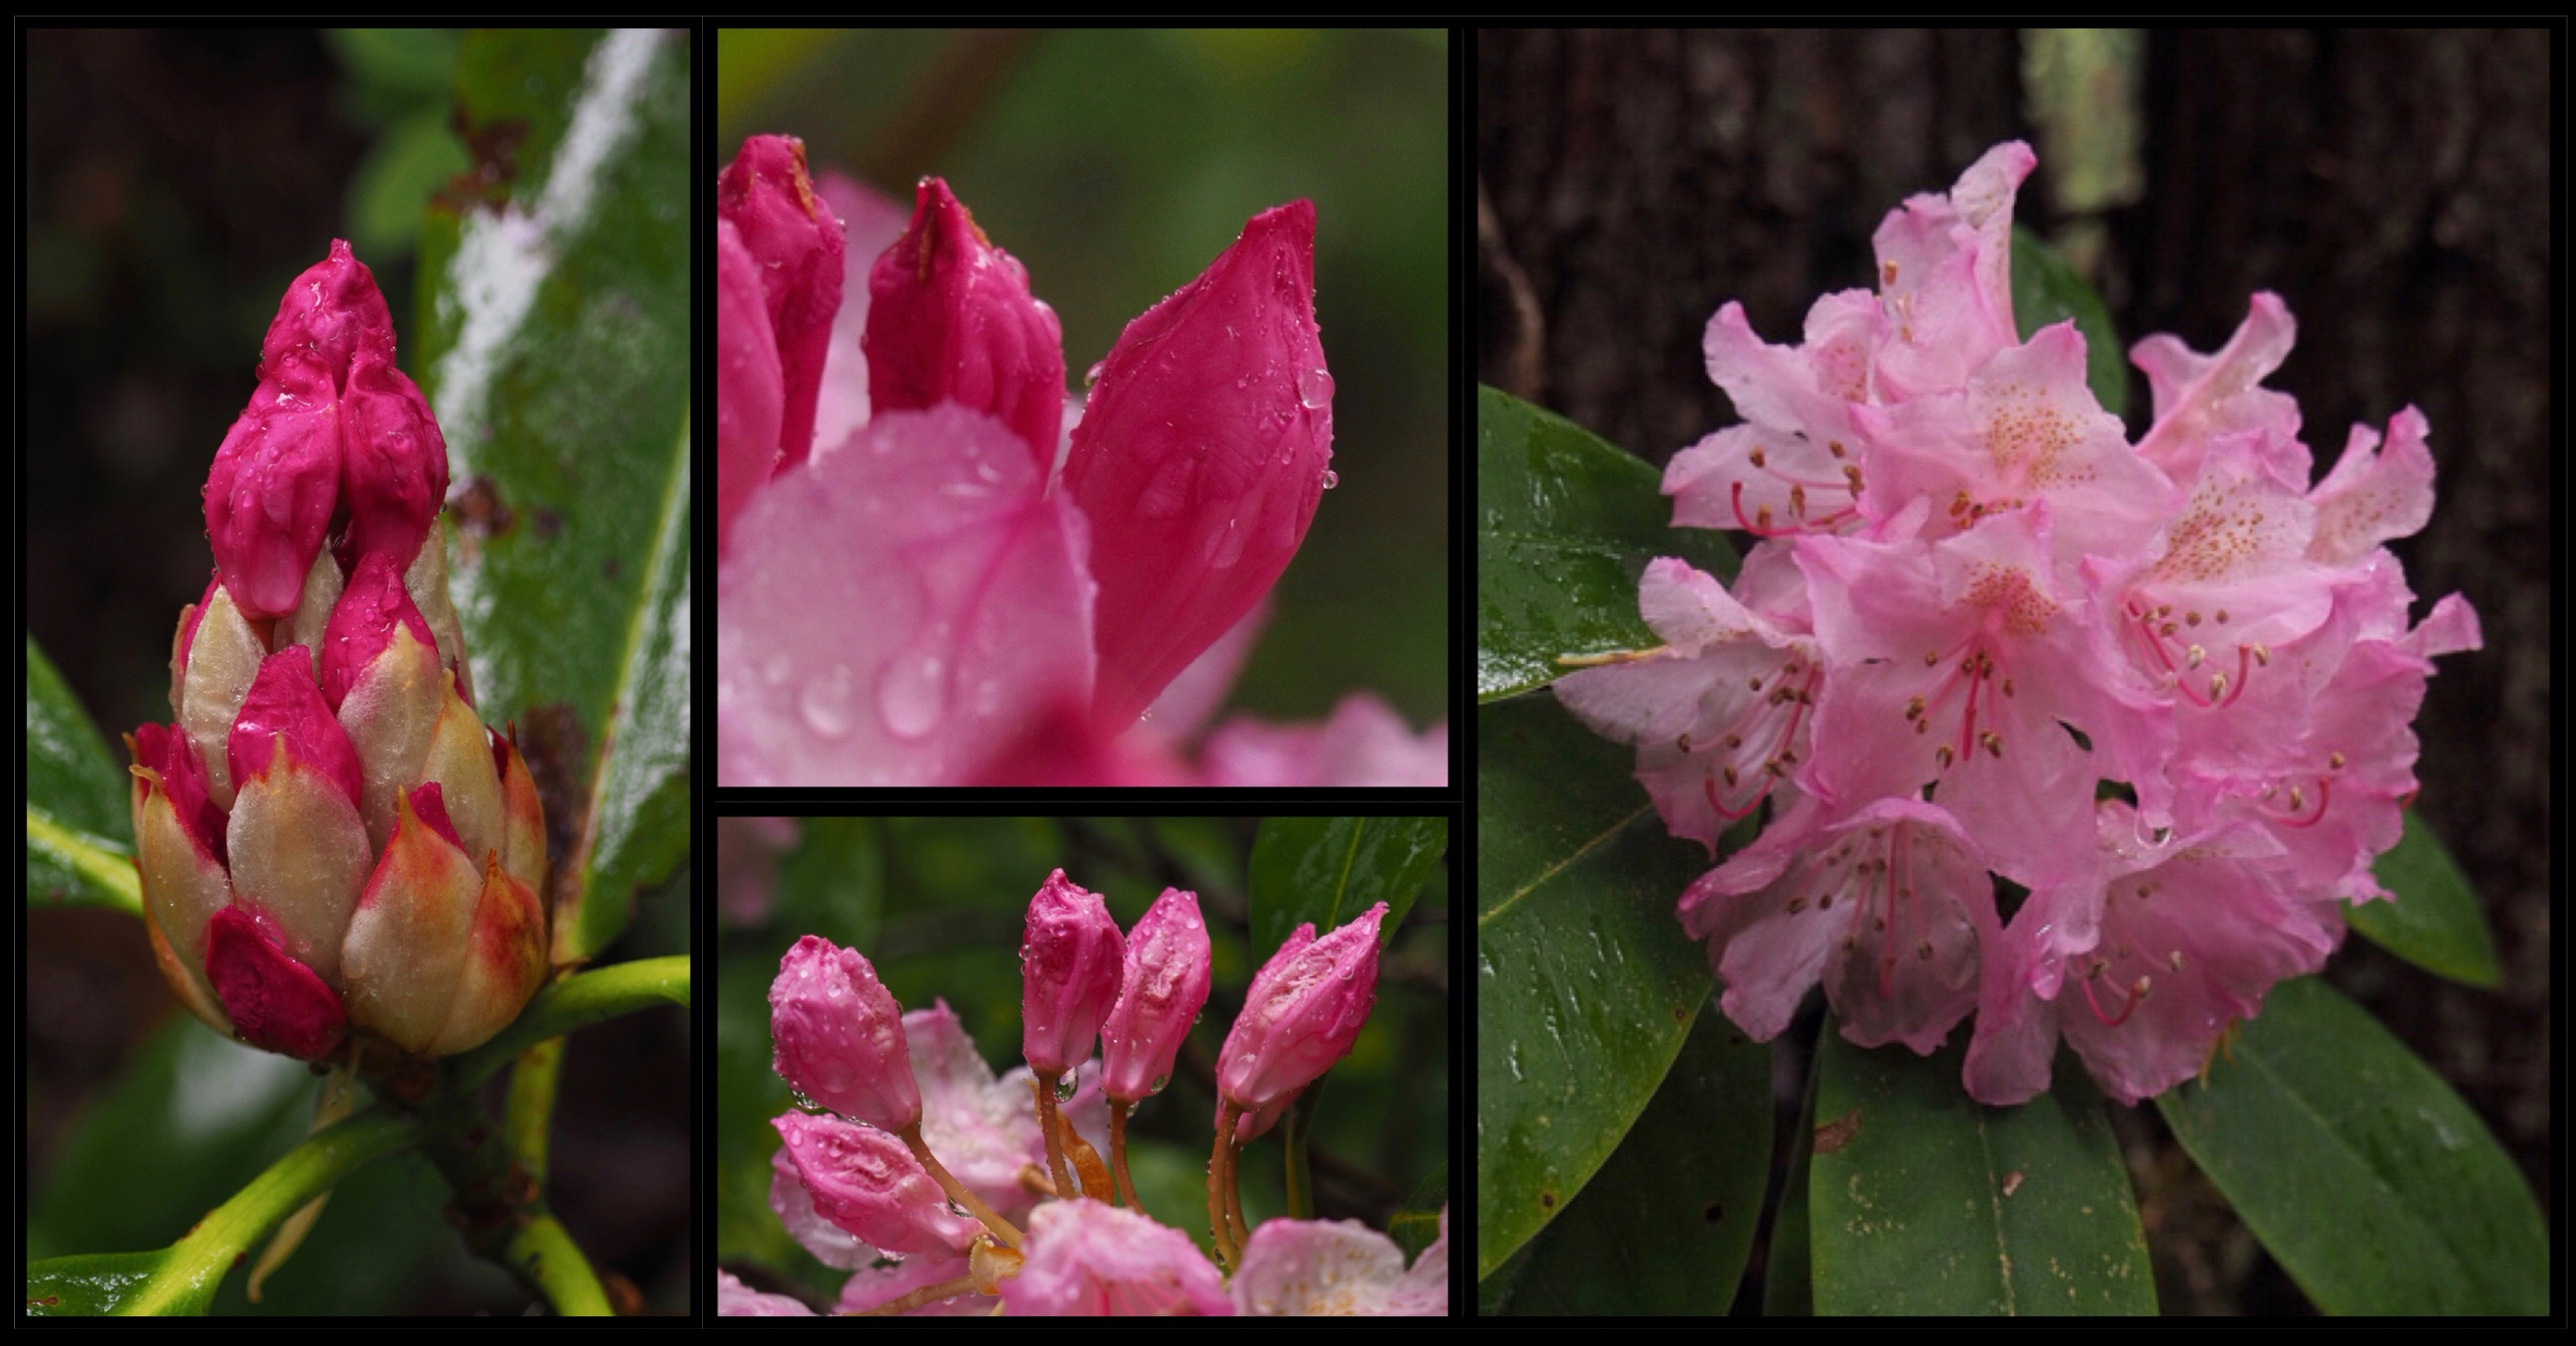 From bud to bloom, the trailside rhododendrons (R. macrophyllum) lend an exotic air to the woodland shadows. Mount Zion Trail, June 15, 2016.